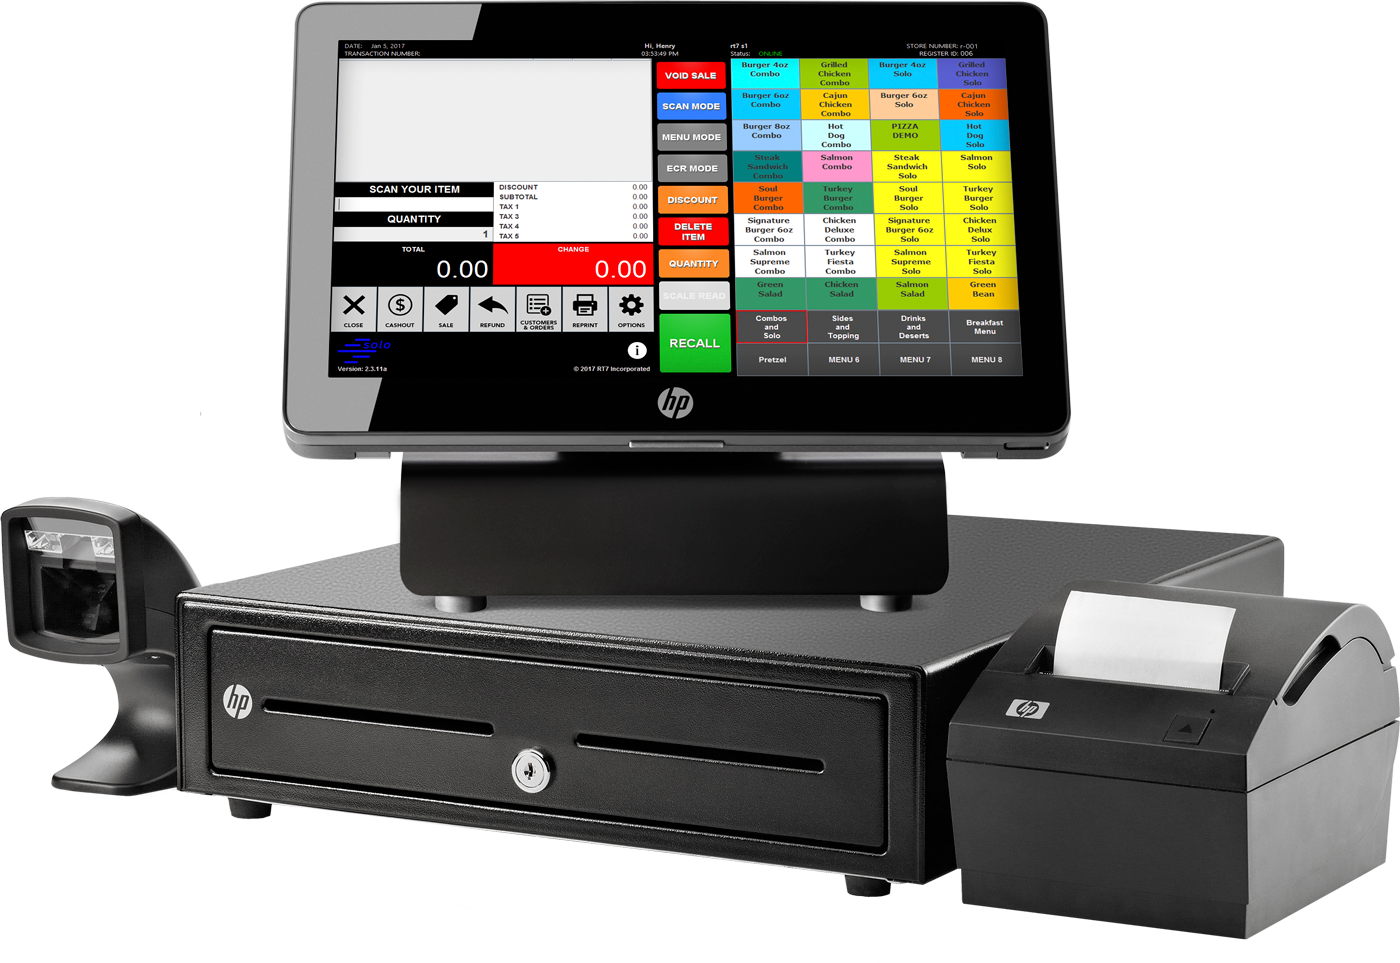 kisspng-point-of-sale-sales-cash-register-hewlett-packard-pos-machine-5b56e234454296.7412961415324206602837